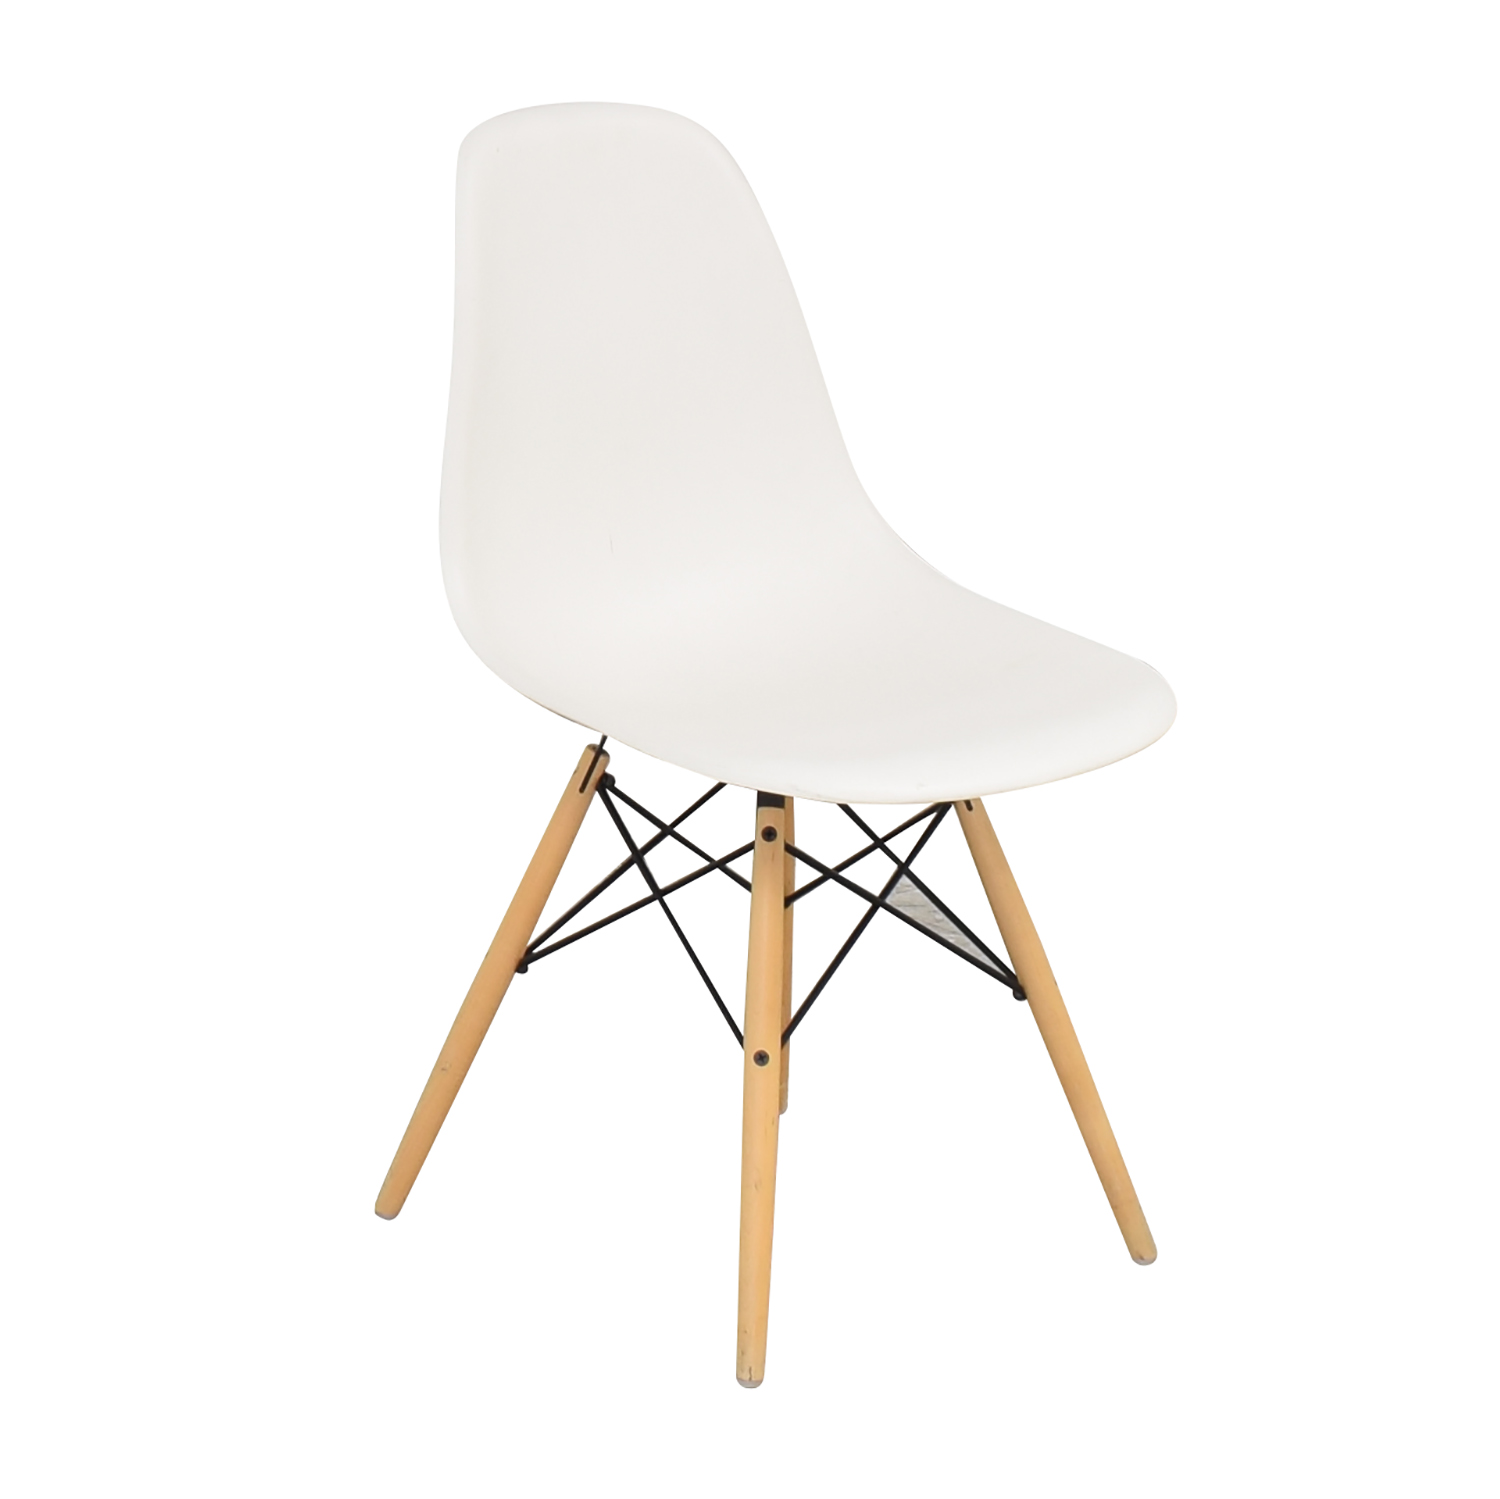 Vitra Eames Side Chair / Chairs